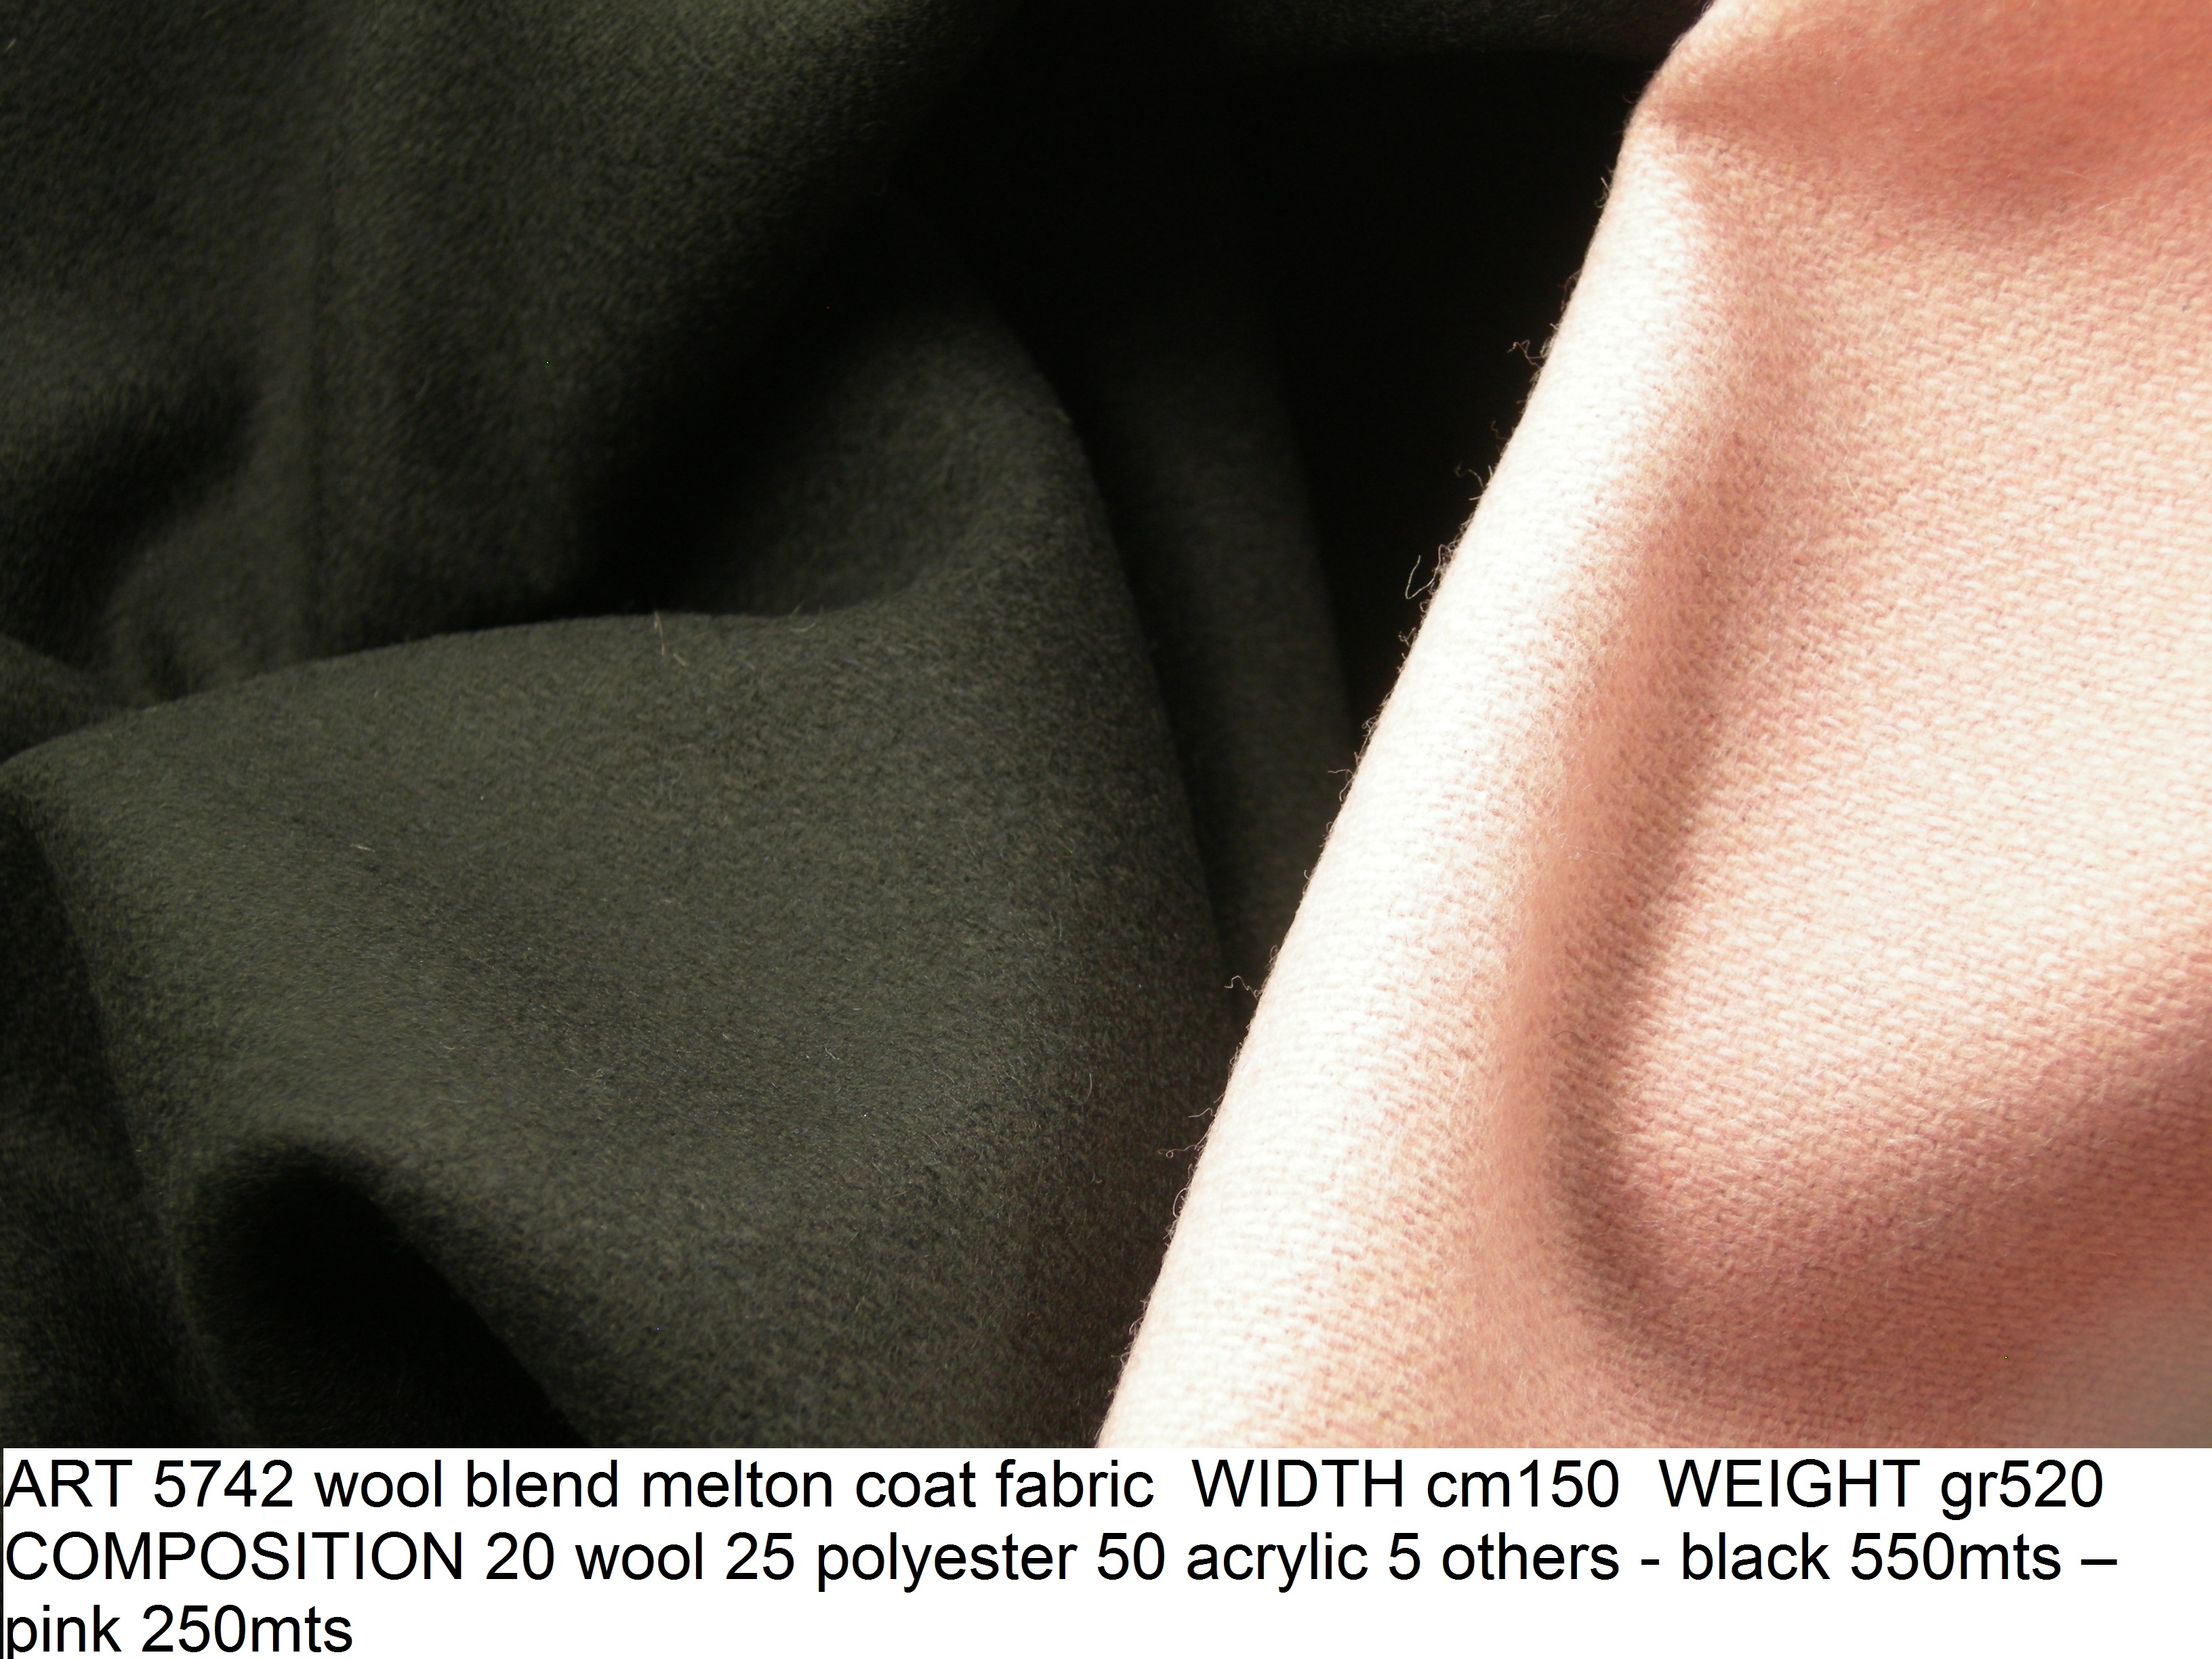 ART 5742 wool blend melton coat fabric WIDTH cm150 WEIGHT gr520 COMPOSITION 20 wool 25 polyester 50 acrylic 5 others - black 550mts – pink 250mts